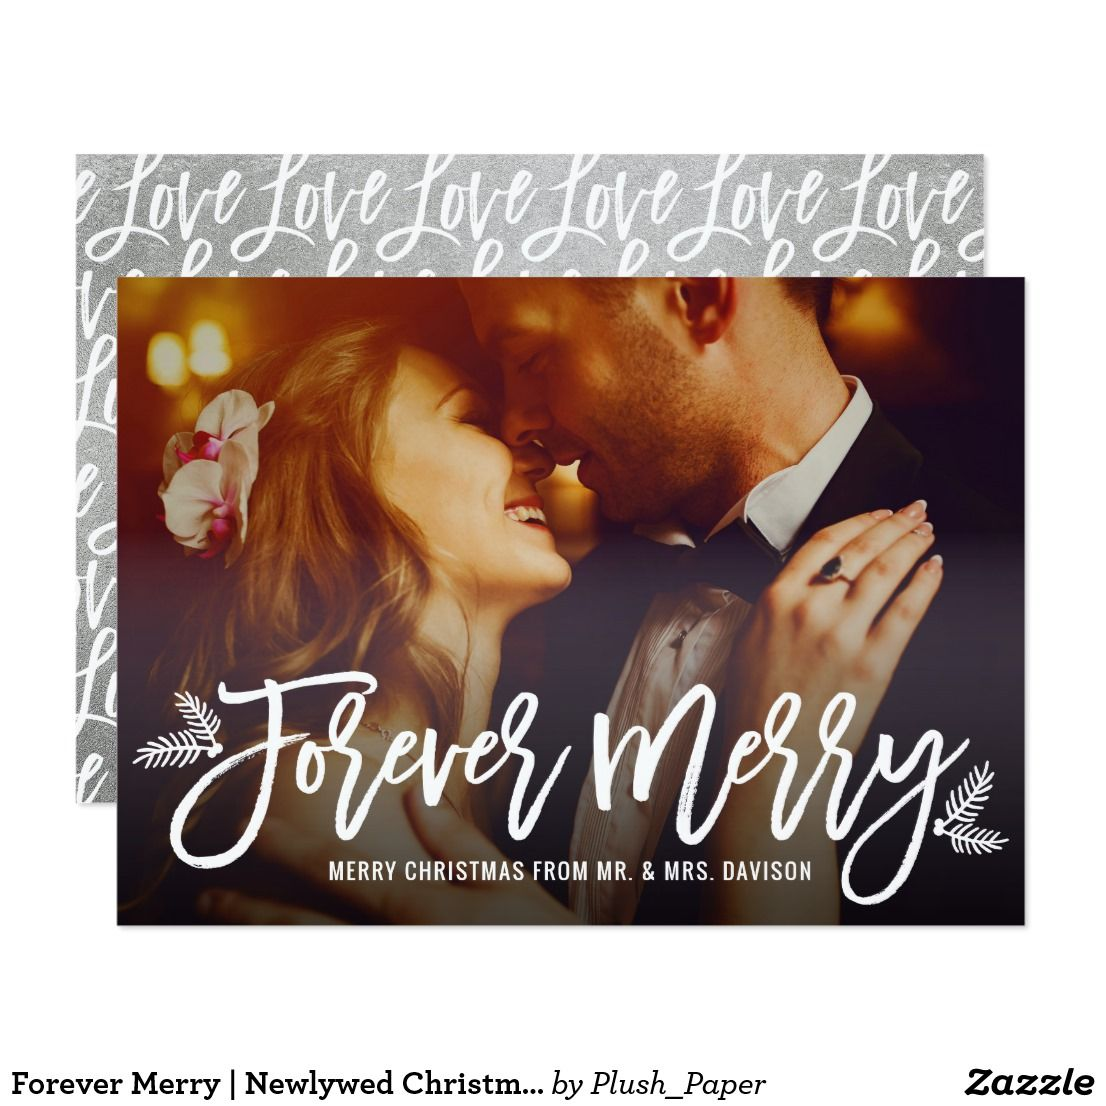 Forever Merry | Newlywed Christmas Card | Newlywed christmas card